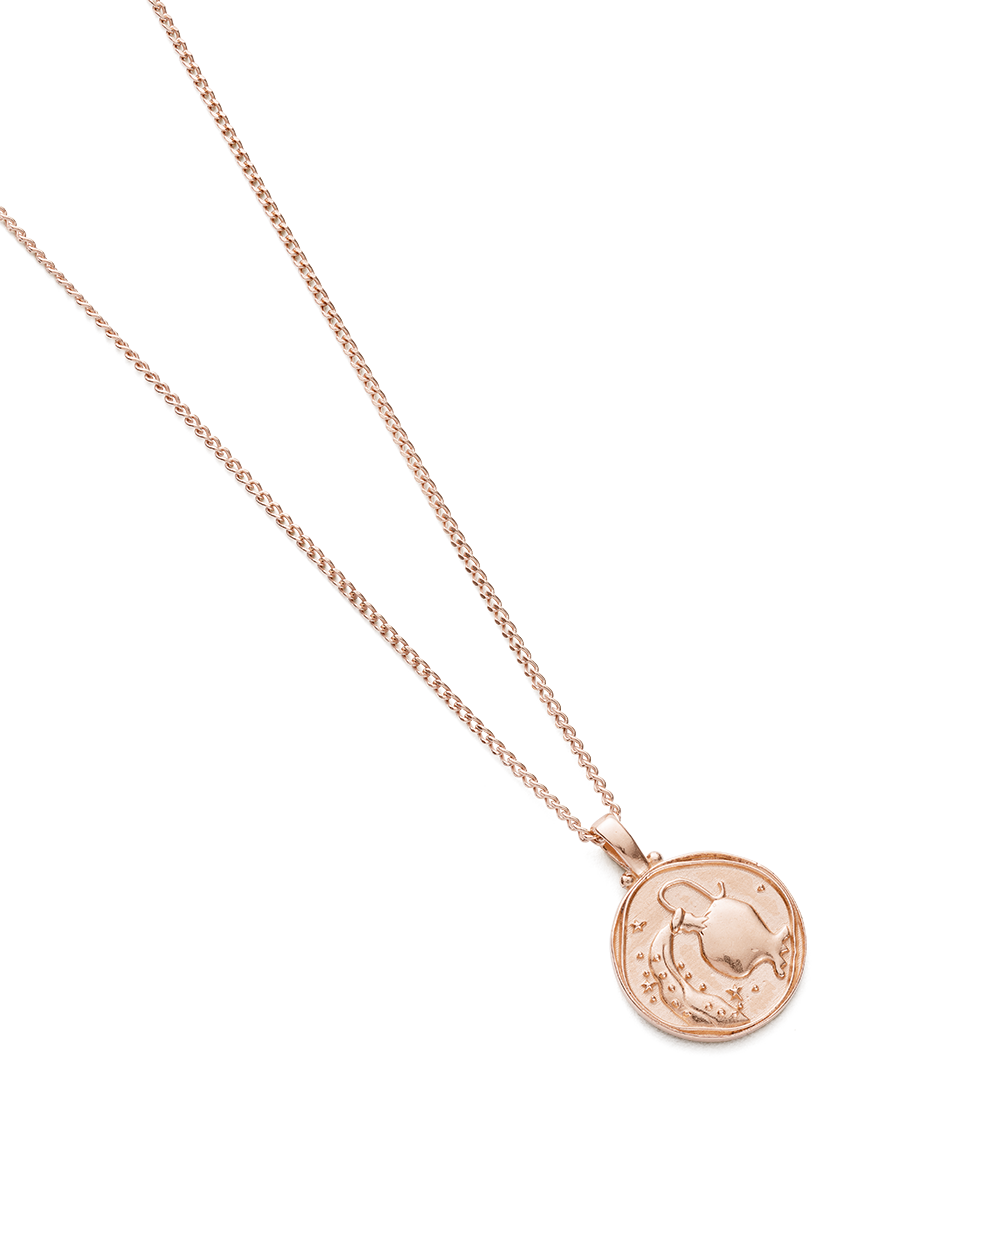 AQUARIUS ZODIAC NECKLACE (18K-ROSE GOLD-VERMEIL)